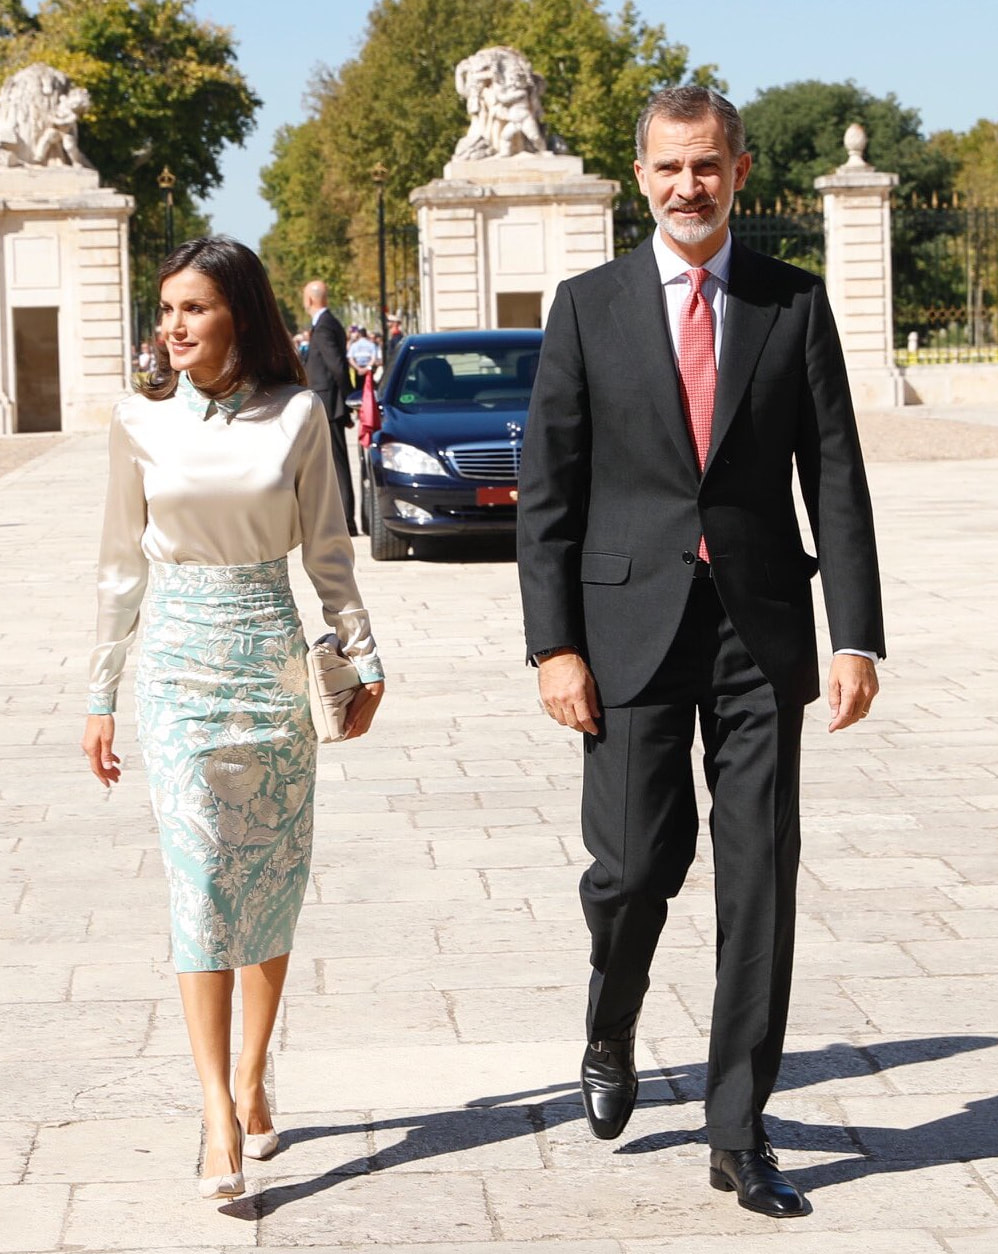 King Felipe & Queen Letizia attend meeting of the Board of Trustees of the Cervantes Institute 2019